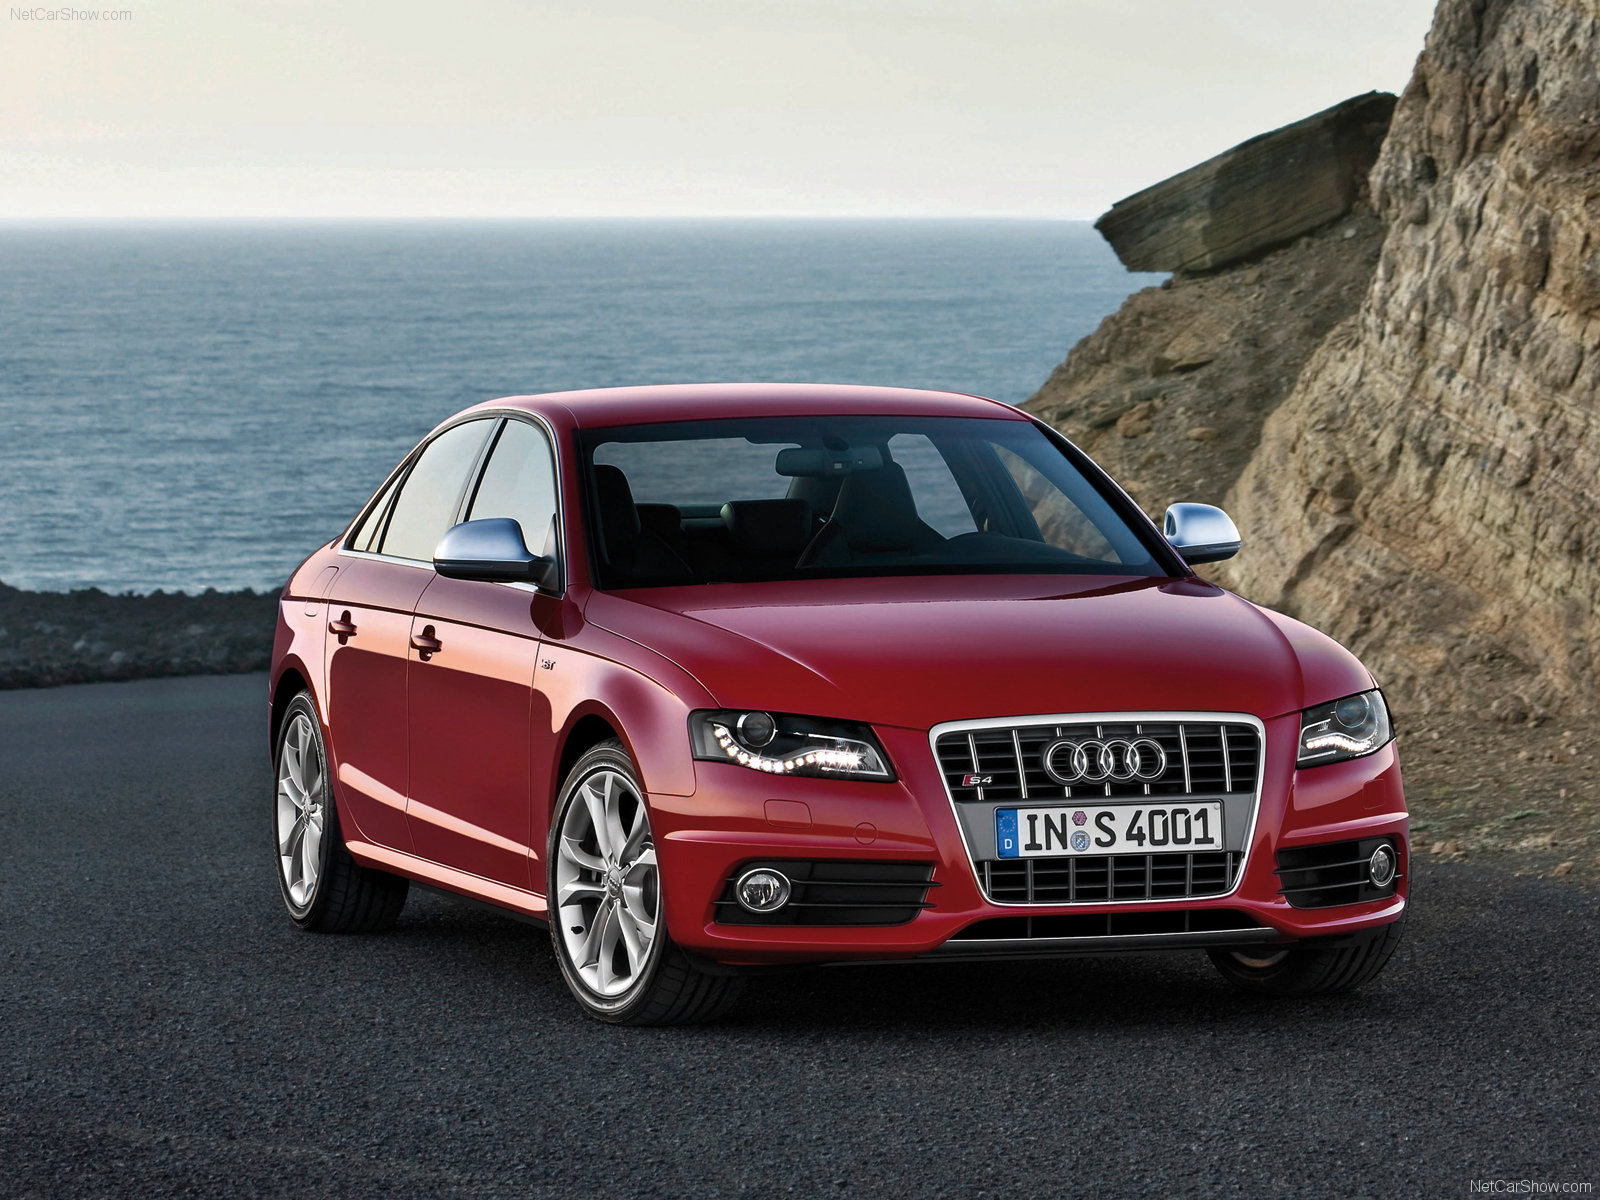 Title :audi s4 Category : Audi Posted : June 26, 2015 at 6:52 pm Viewed : 2 times File type : image/jpeg File Size : 591 kB Resolution : 2000 x 1320 Pixel ...